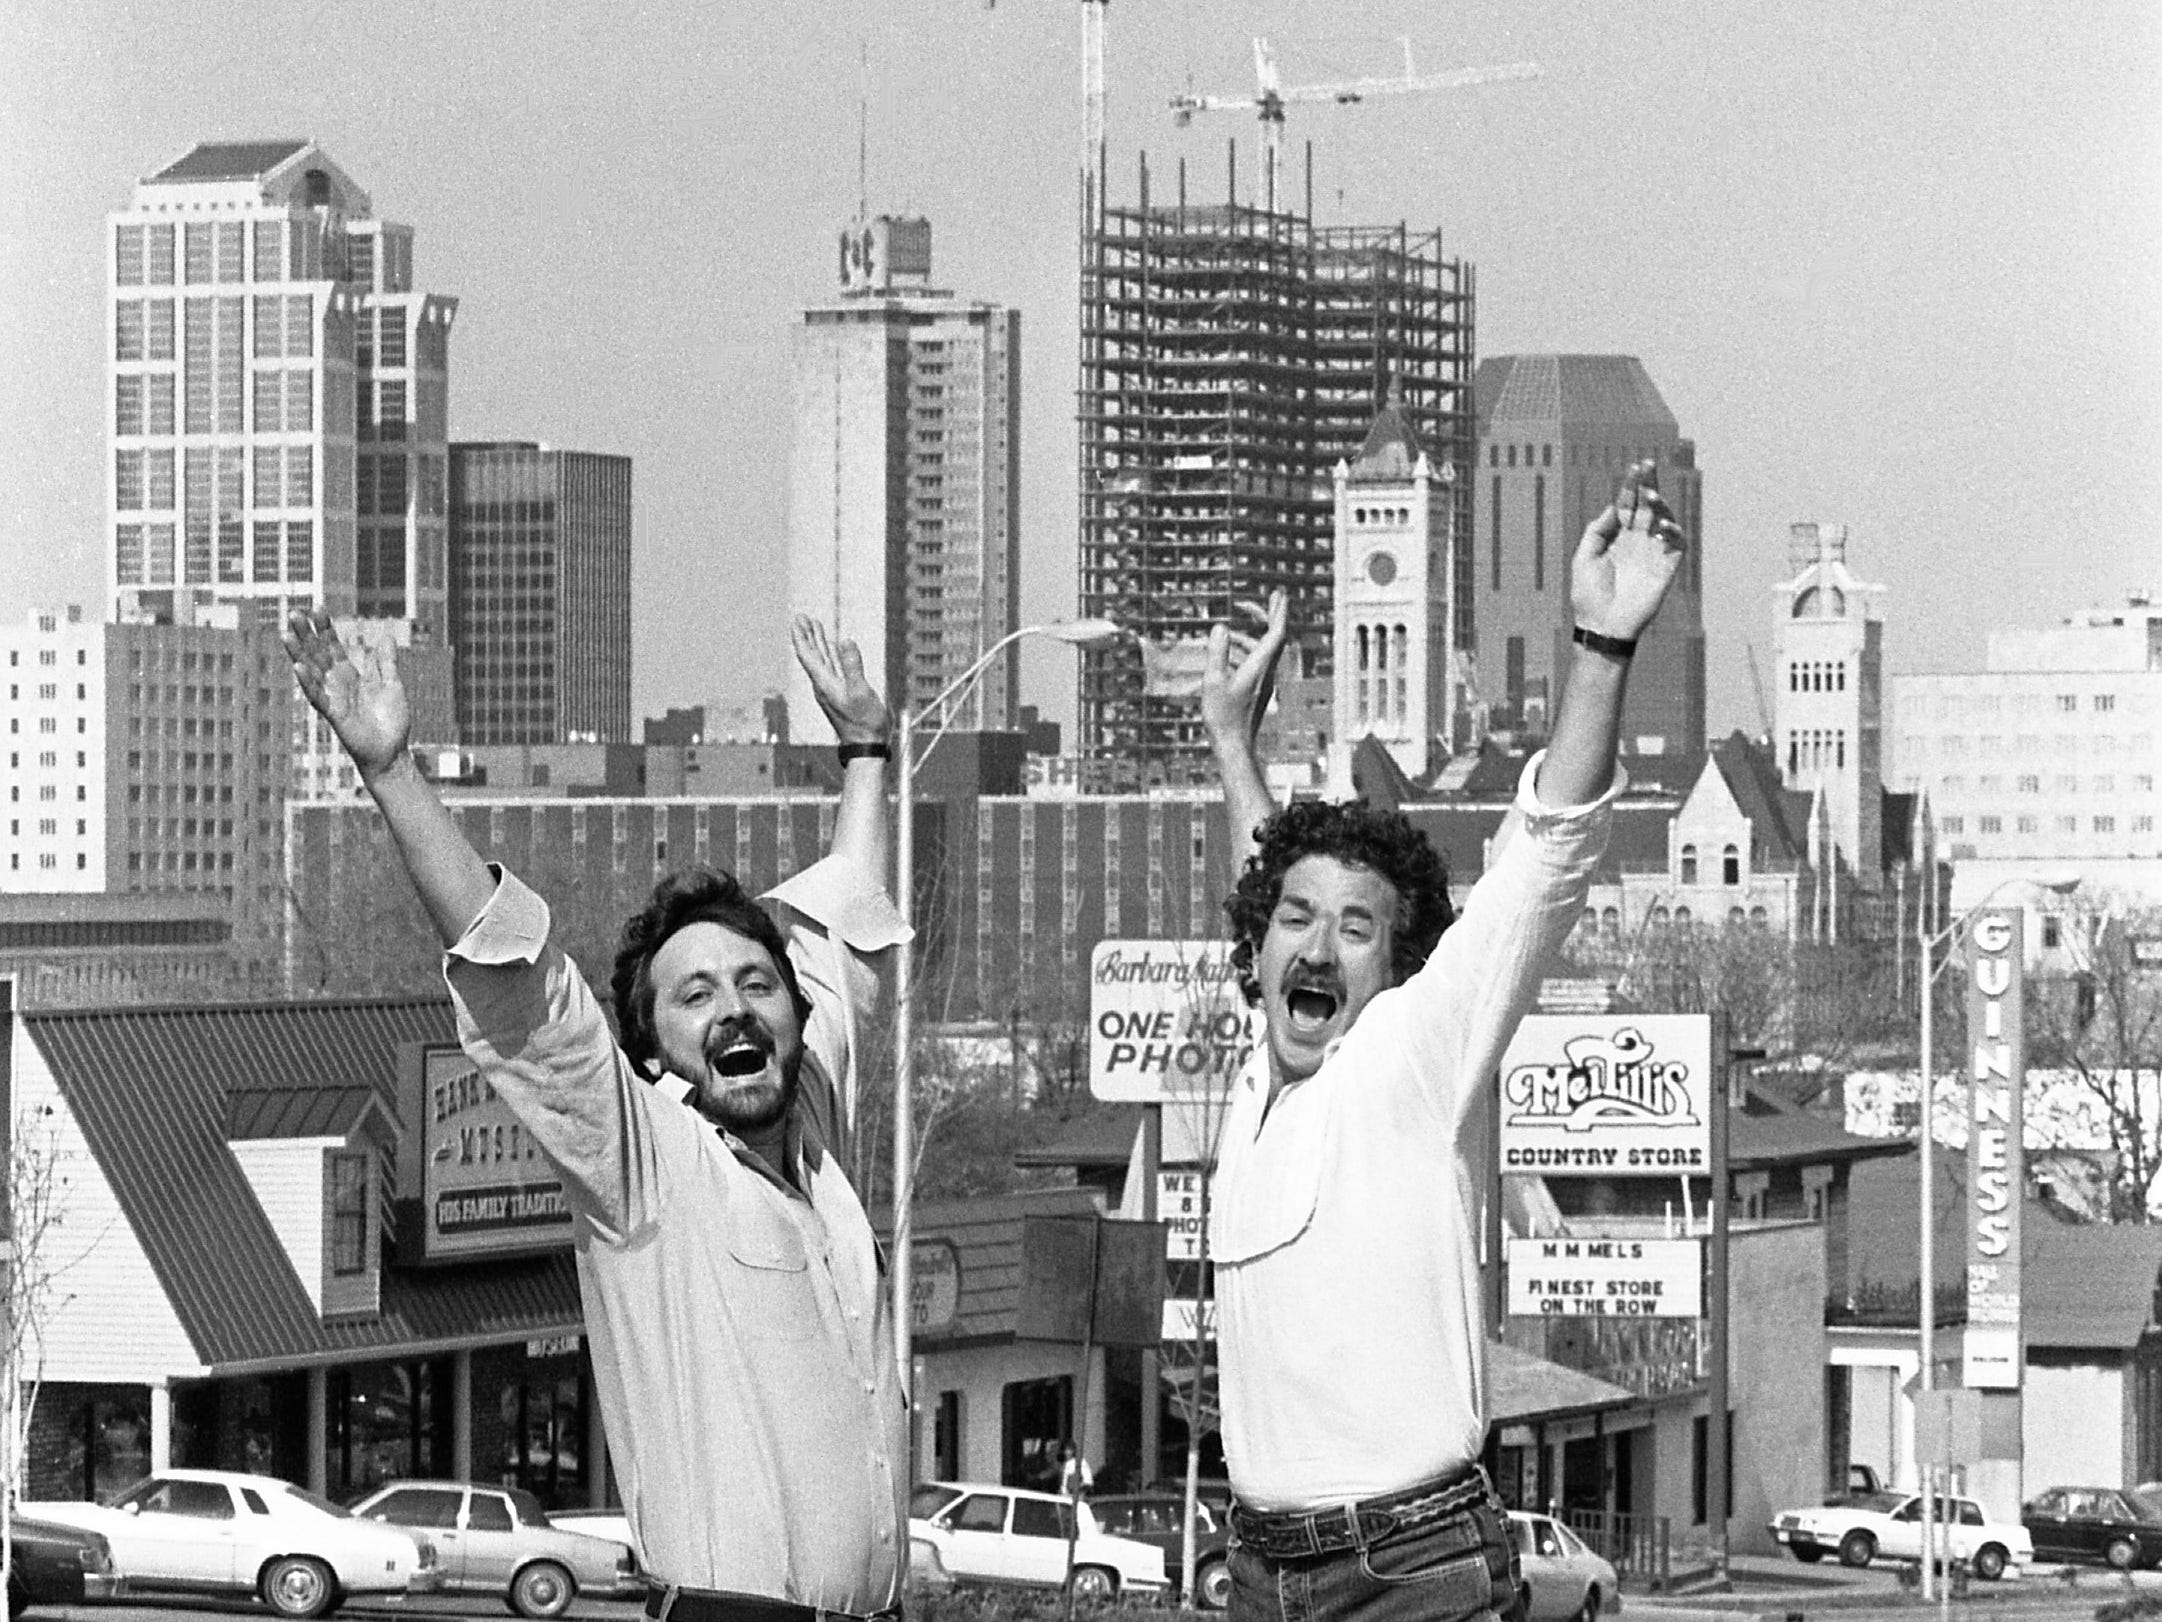 "Songwriters Chris Waters, left, and Kix Brooks, selected as composers of Nashville's official theme song, are celebrating their triumph with the city's growing skyline behind them April 1, 1986. Their song, ""I Still Hear The Music of Nashville,"" will be premiere during the Summer Lights celebration by the Nashville Symphony and a star guest vocalist."